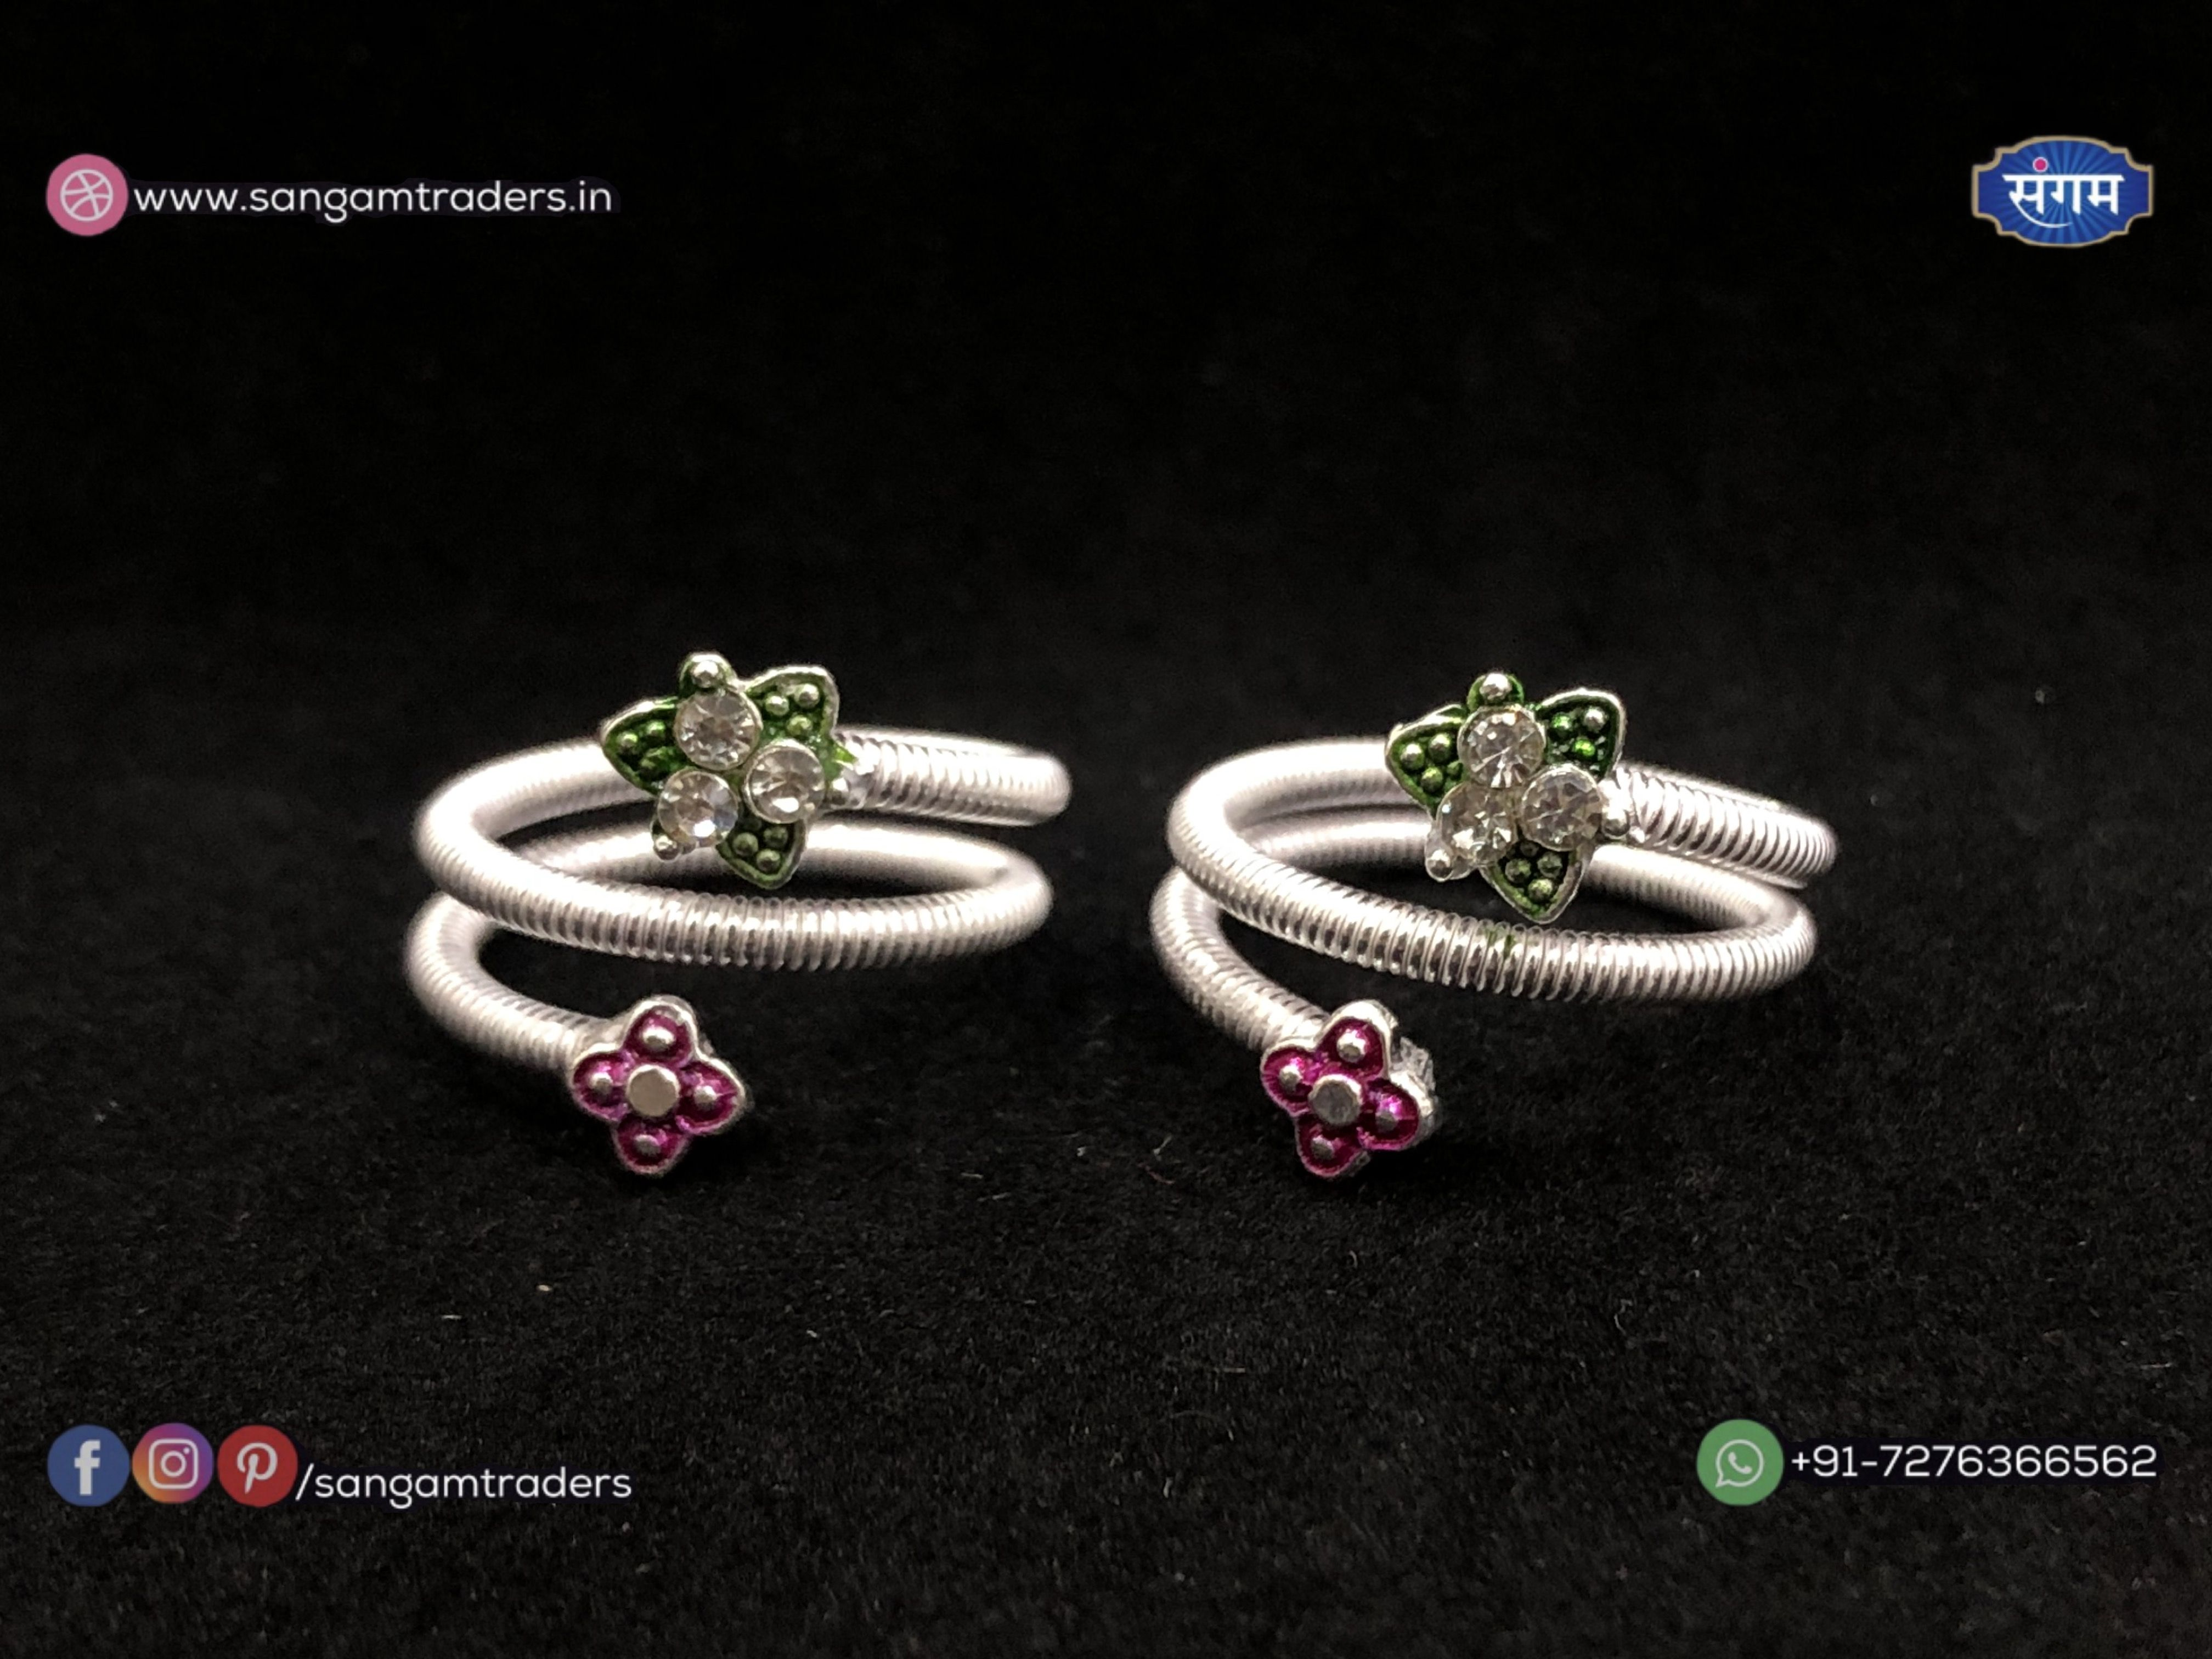 6e4373ac69 Beautiful & latest images of Silver toe rings for foot jewellery which  gives a beautiful look to feet along with anklet. Check out for more bichiya